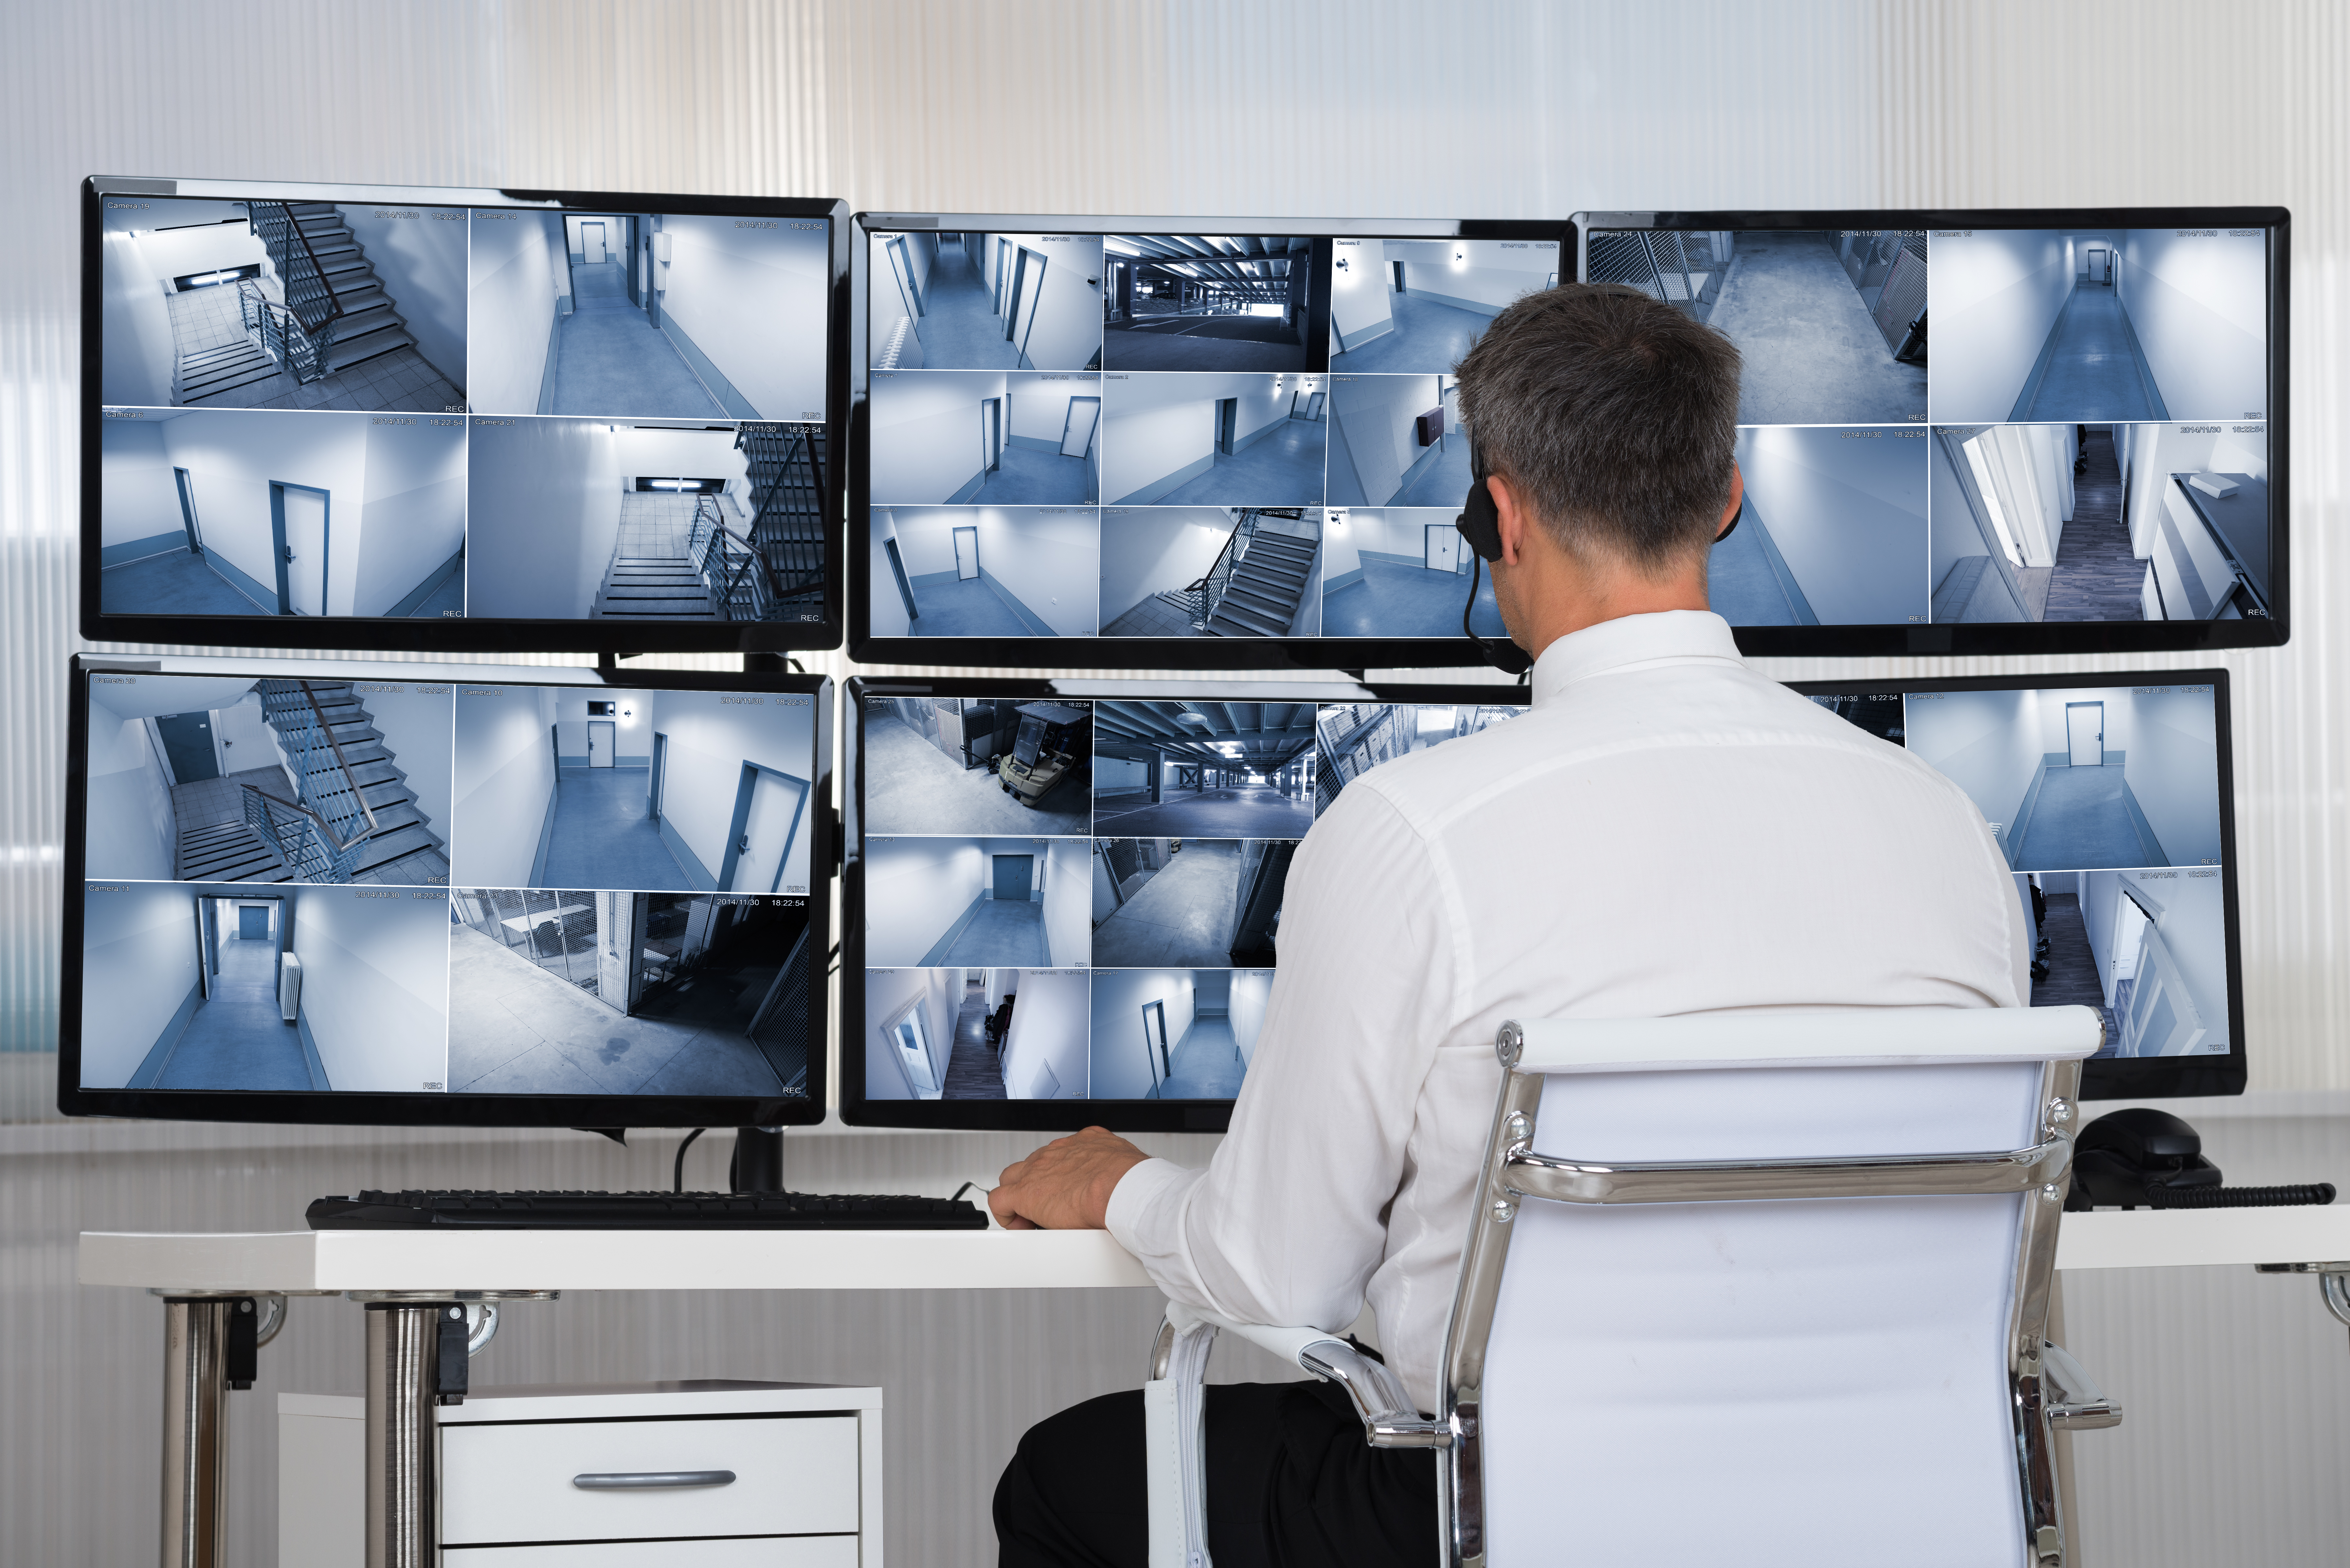 Monitoring, CCTV, security guard